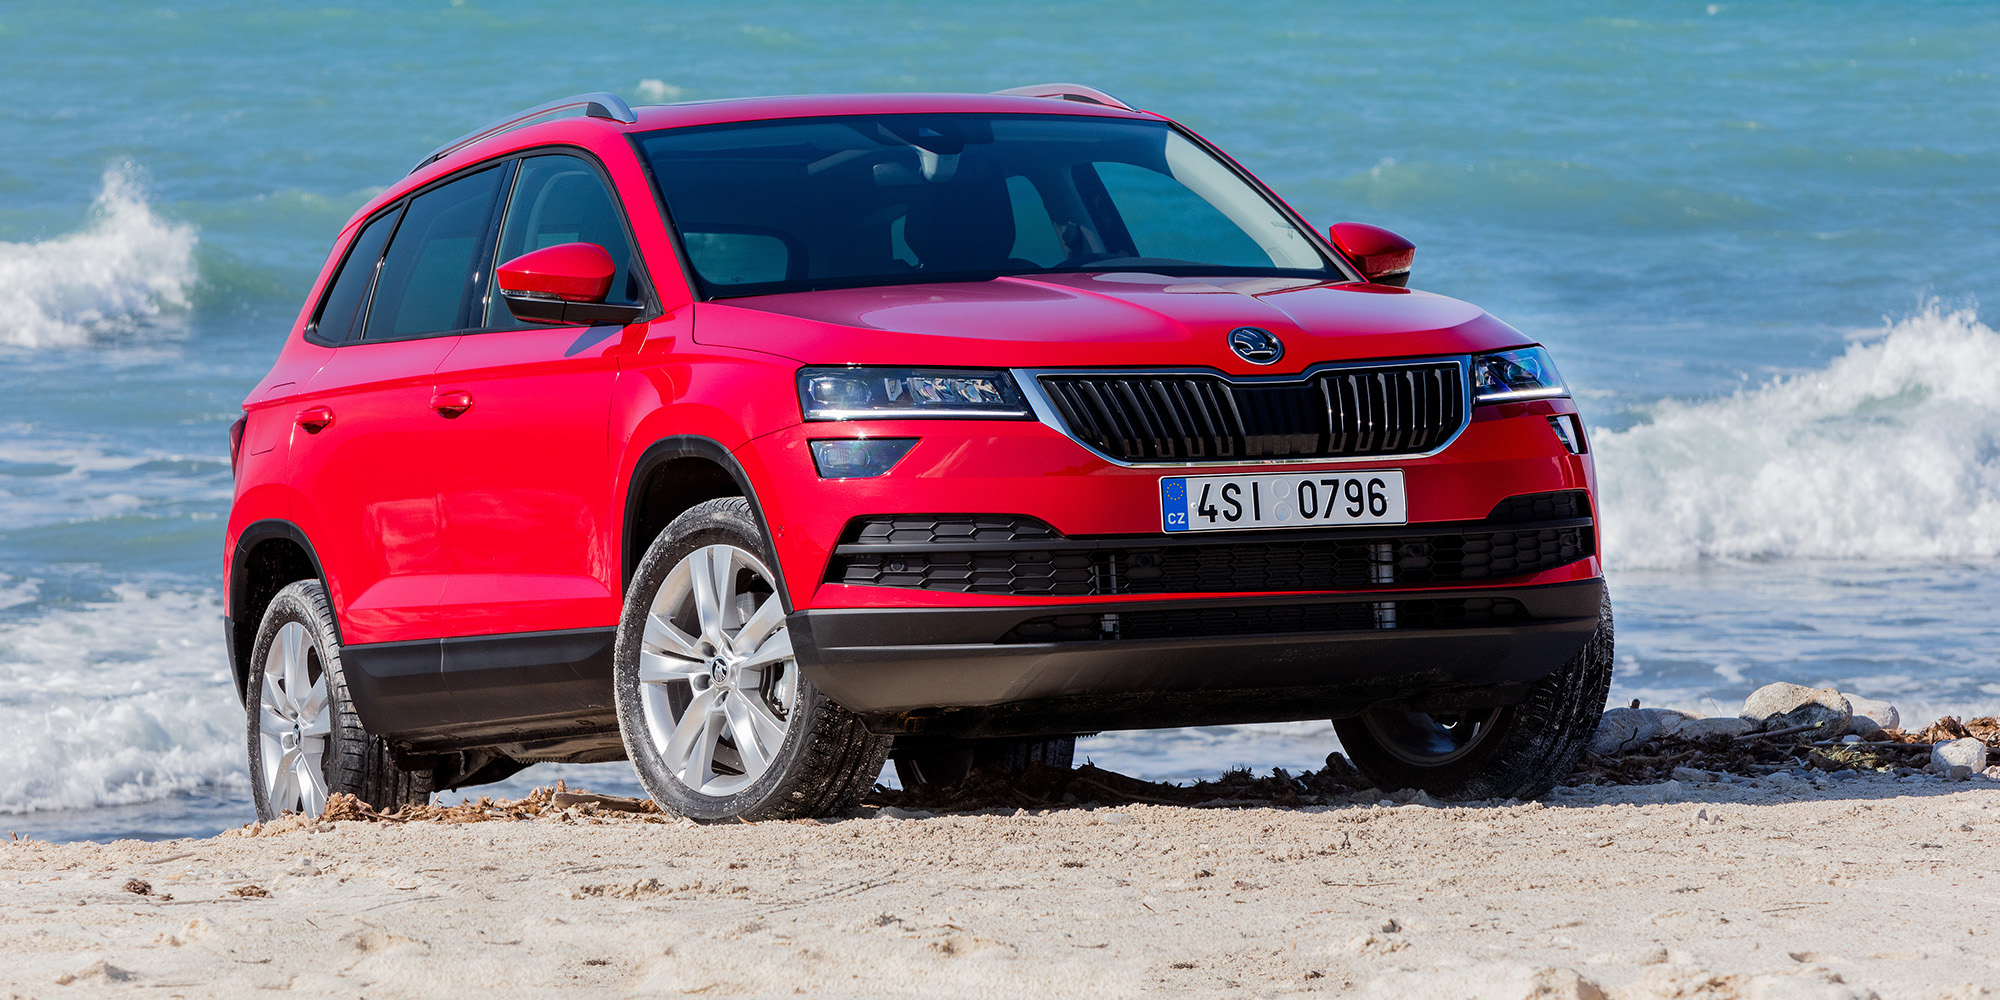 2018 skoda karoq local arm aiming for 30 000 entry point photos. Black Bedroom Furniture Sets. Home Design Ideas